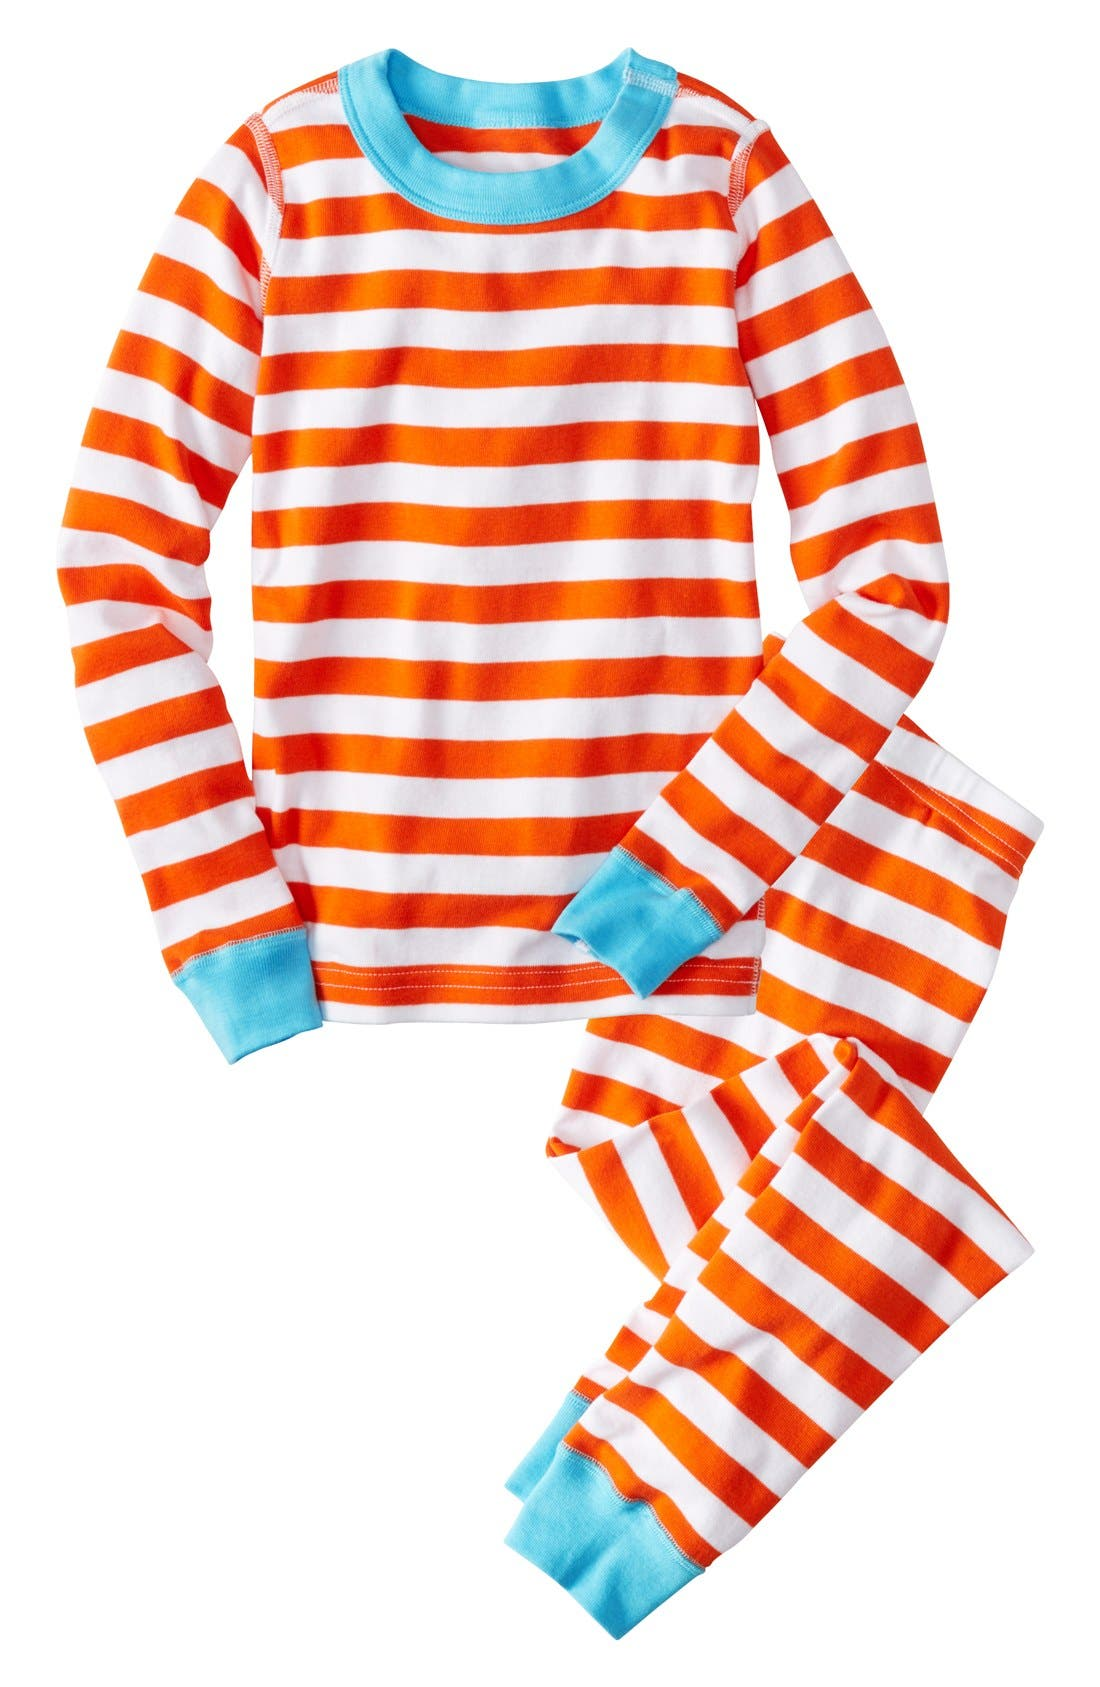 Main Image - Hanna Andersson Two Piece Fitted Organic Cotton Pajamas (Baby & Toddler)